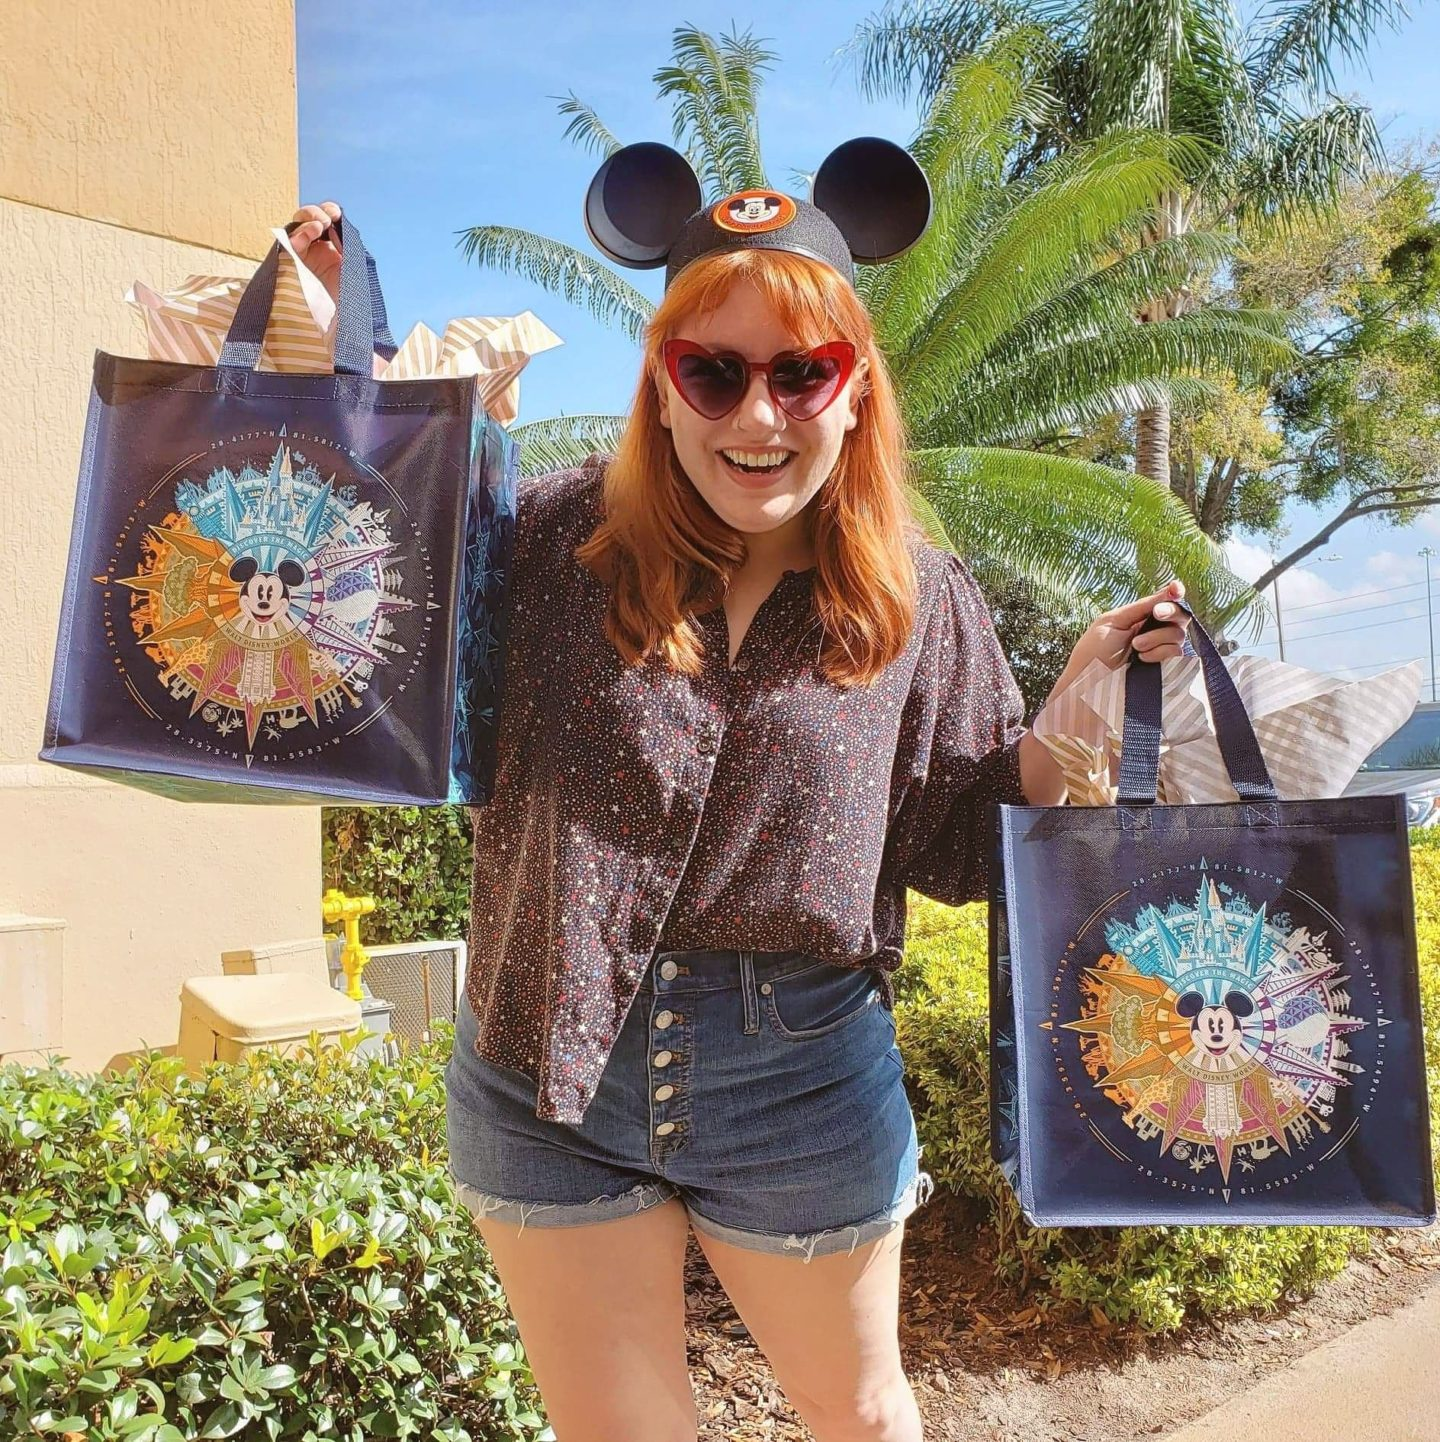 I'm Giving Away 2 Disney Gift Boxes Worth $250 Each!